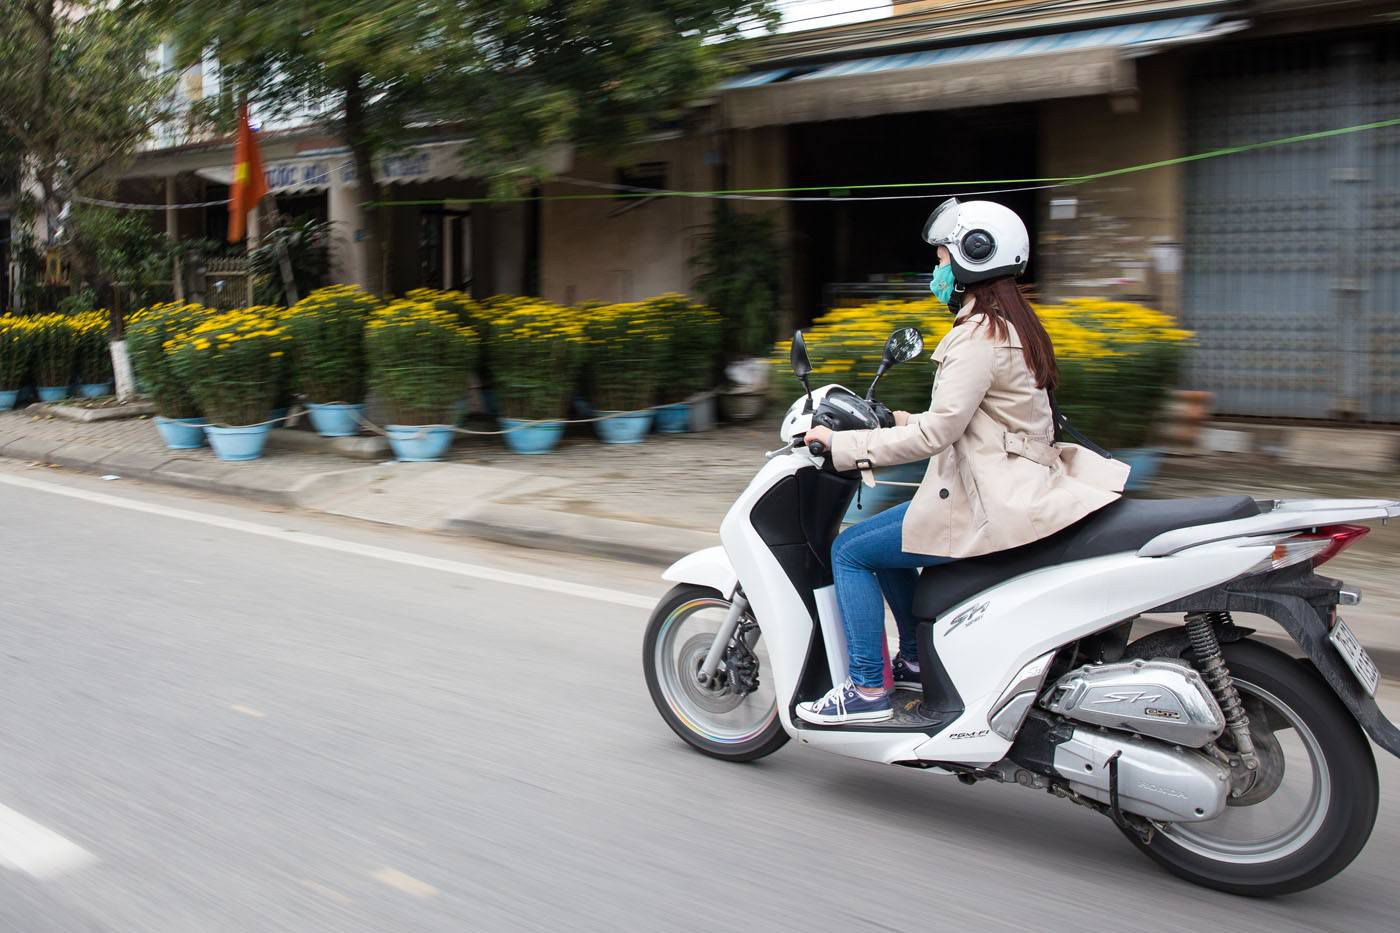 Girl on a Motorbike